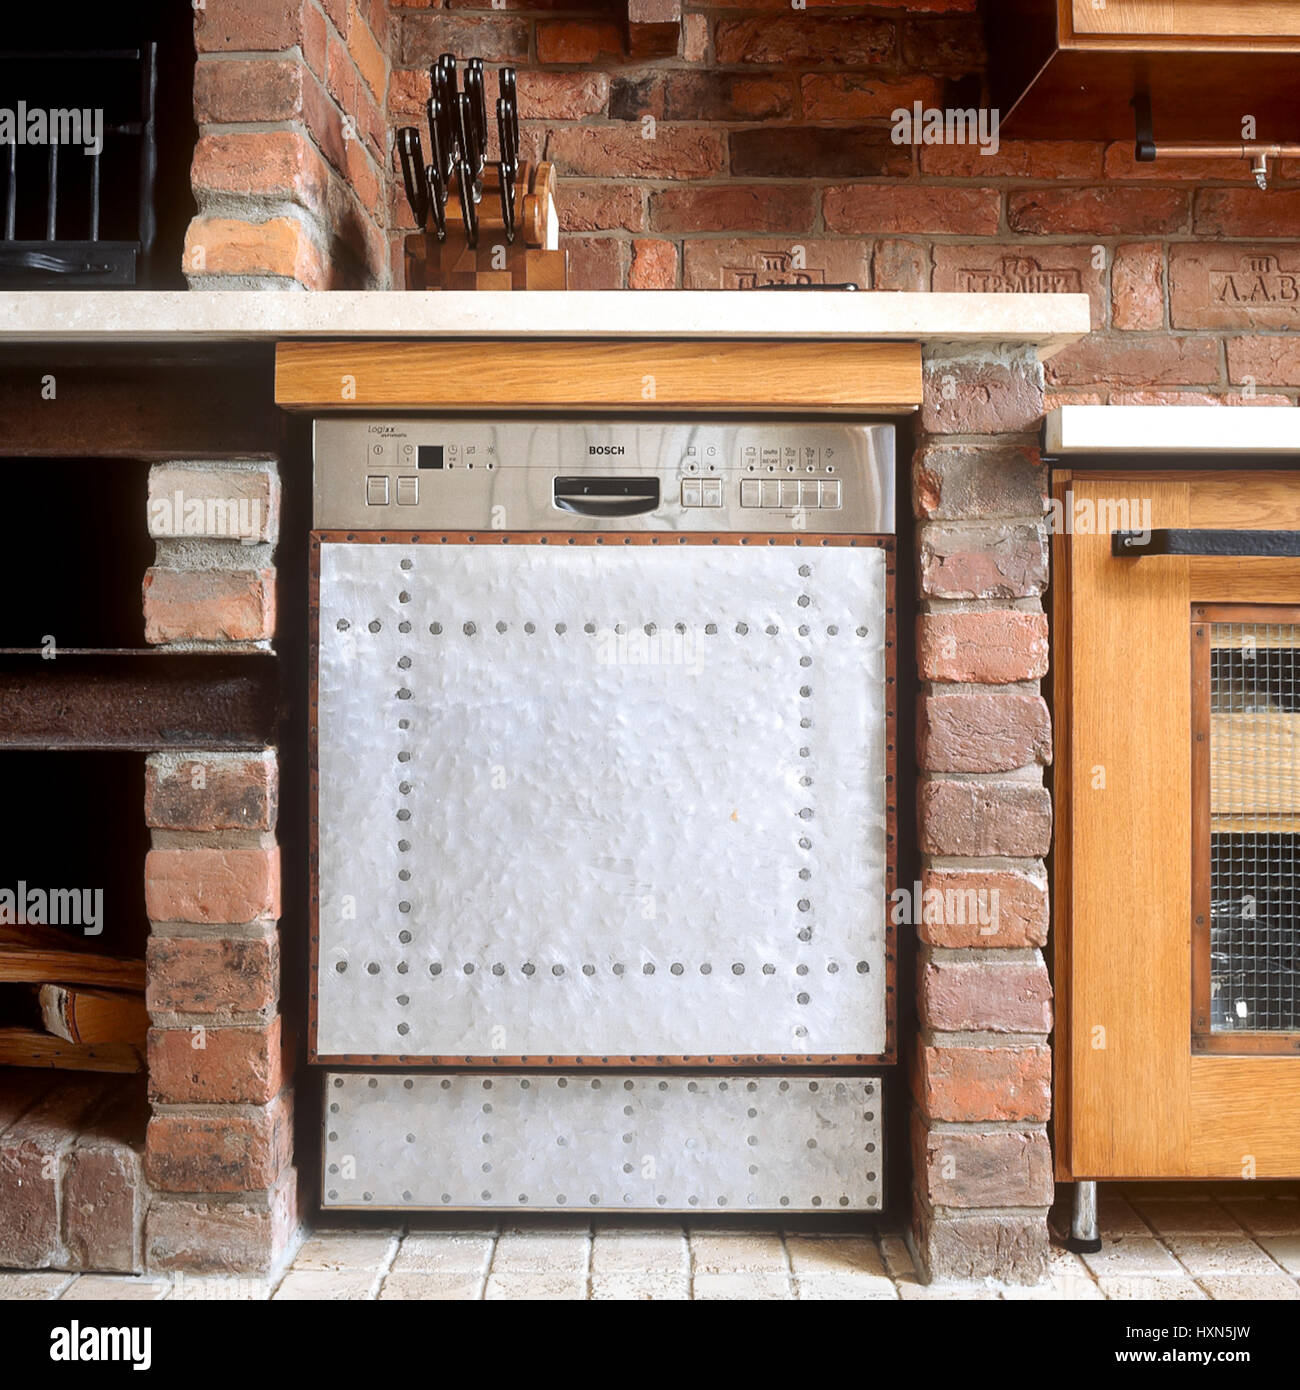 Oven and benchtop in rustic style kitchen. Stock Photo